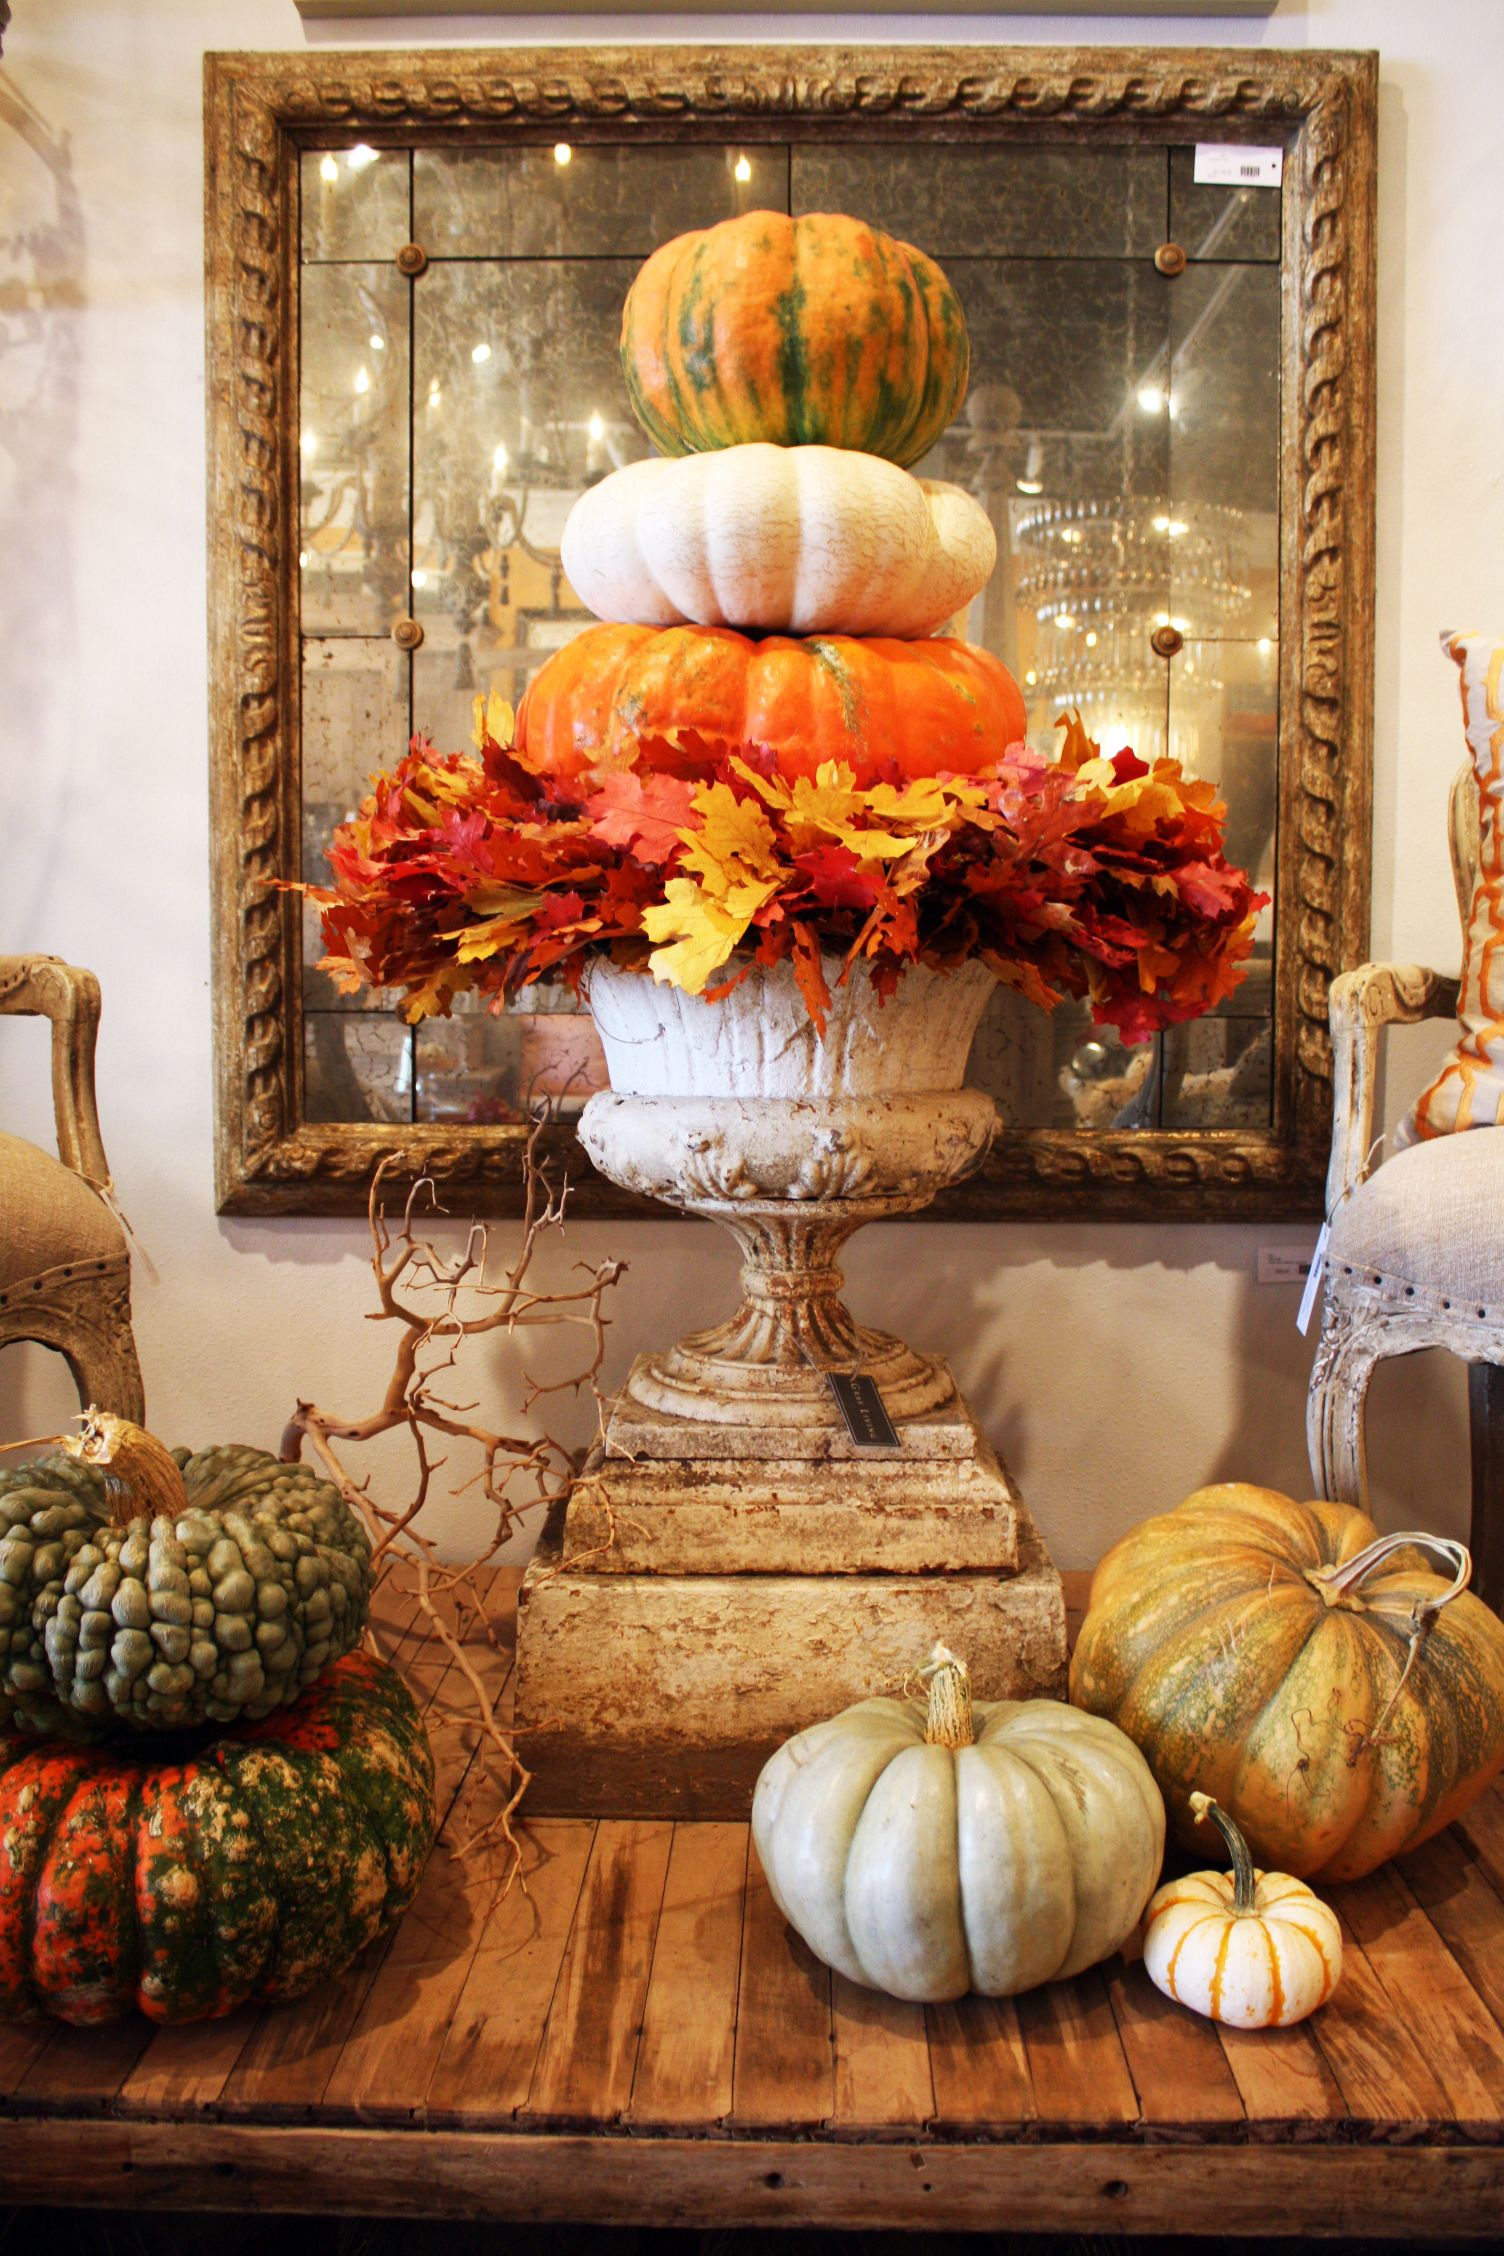 Pumpkin Topiary Ideas Part - 16: Different Colors Of Stacked Pumpkins In An Urn Make For A Lovely Holiday  Display, Whether For Halloween Or Thanksgiving.